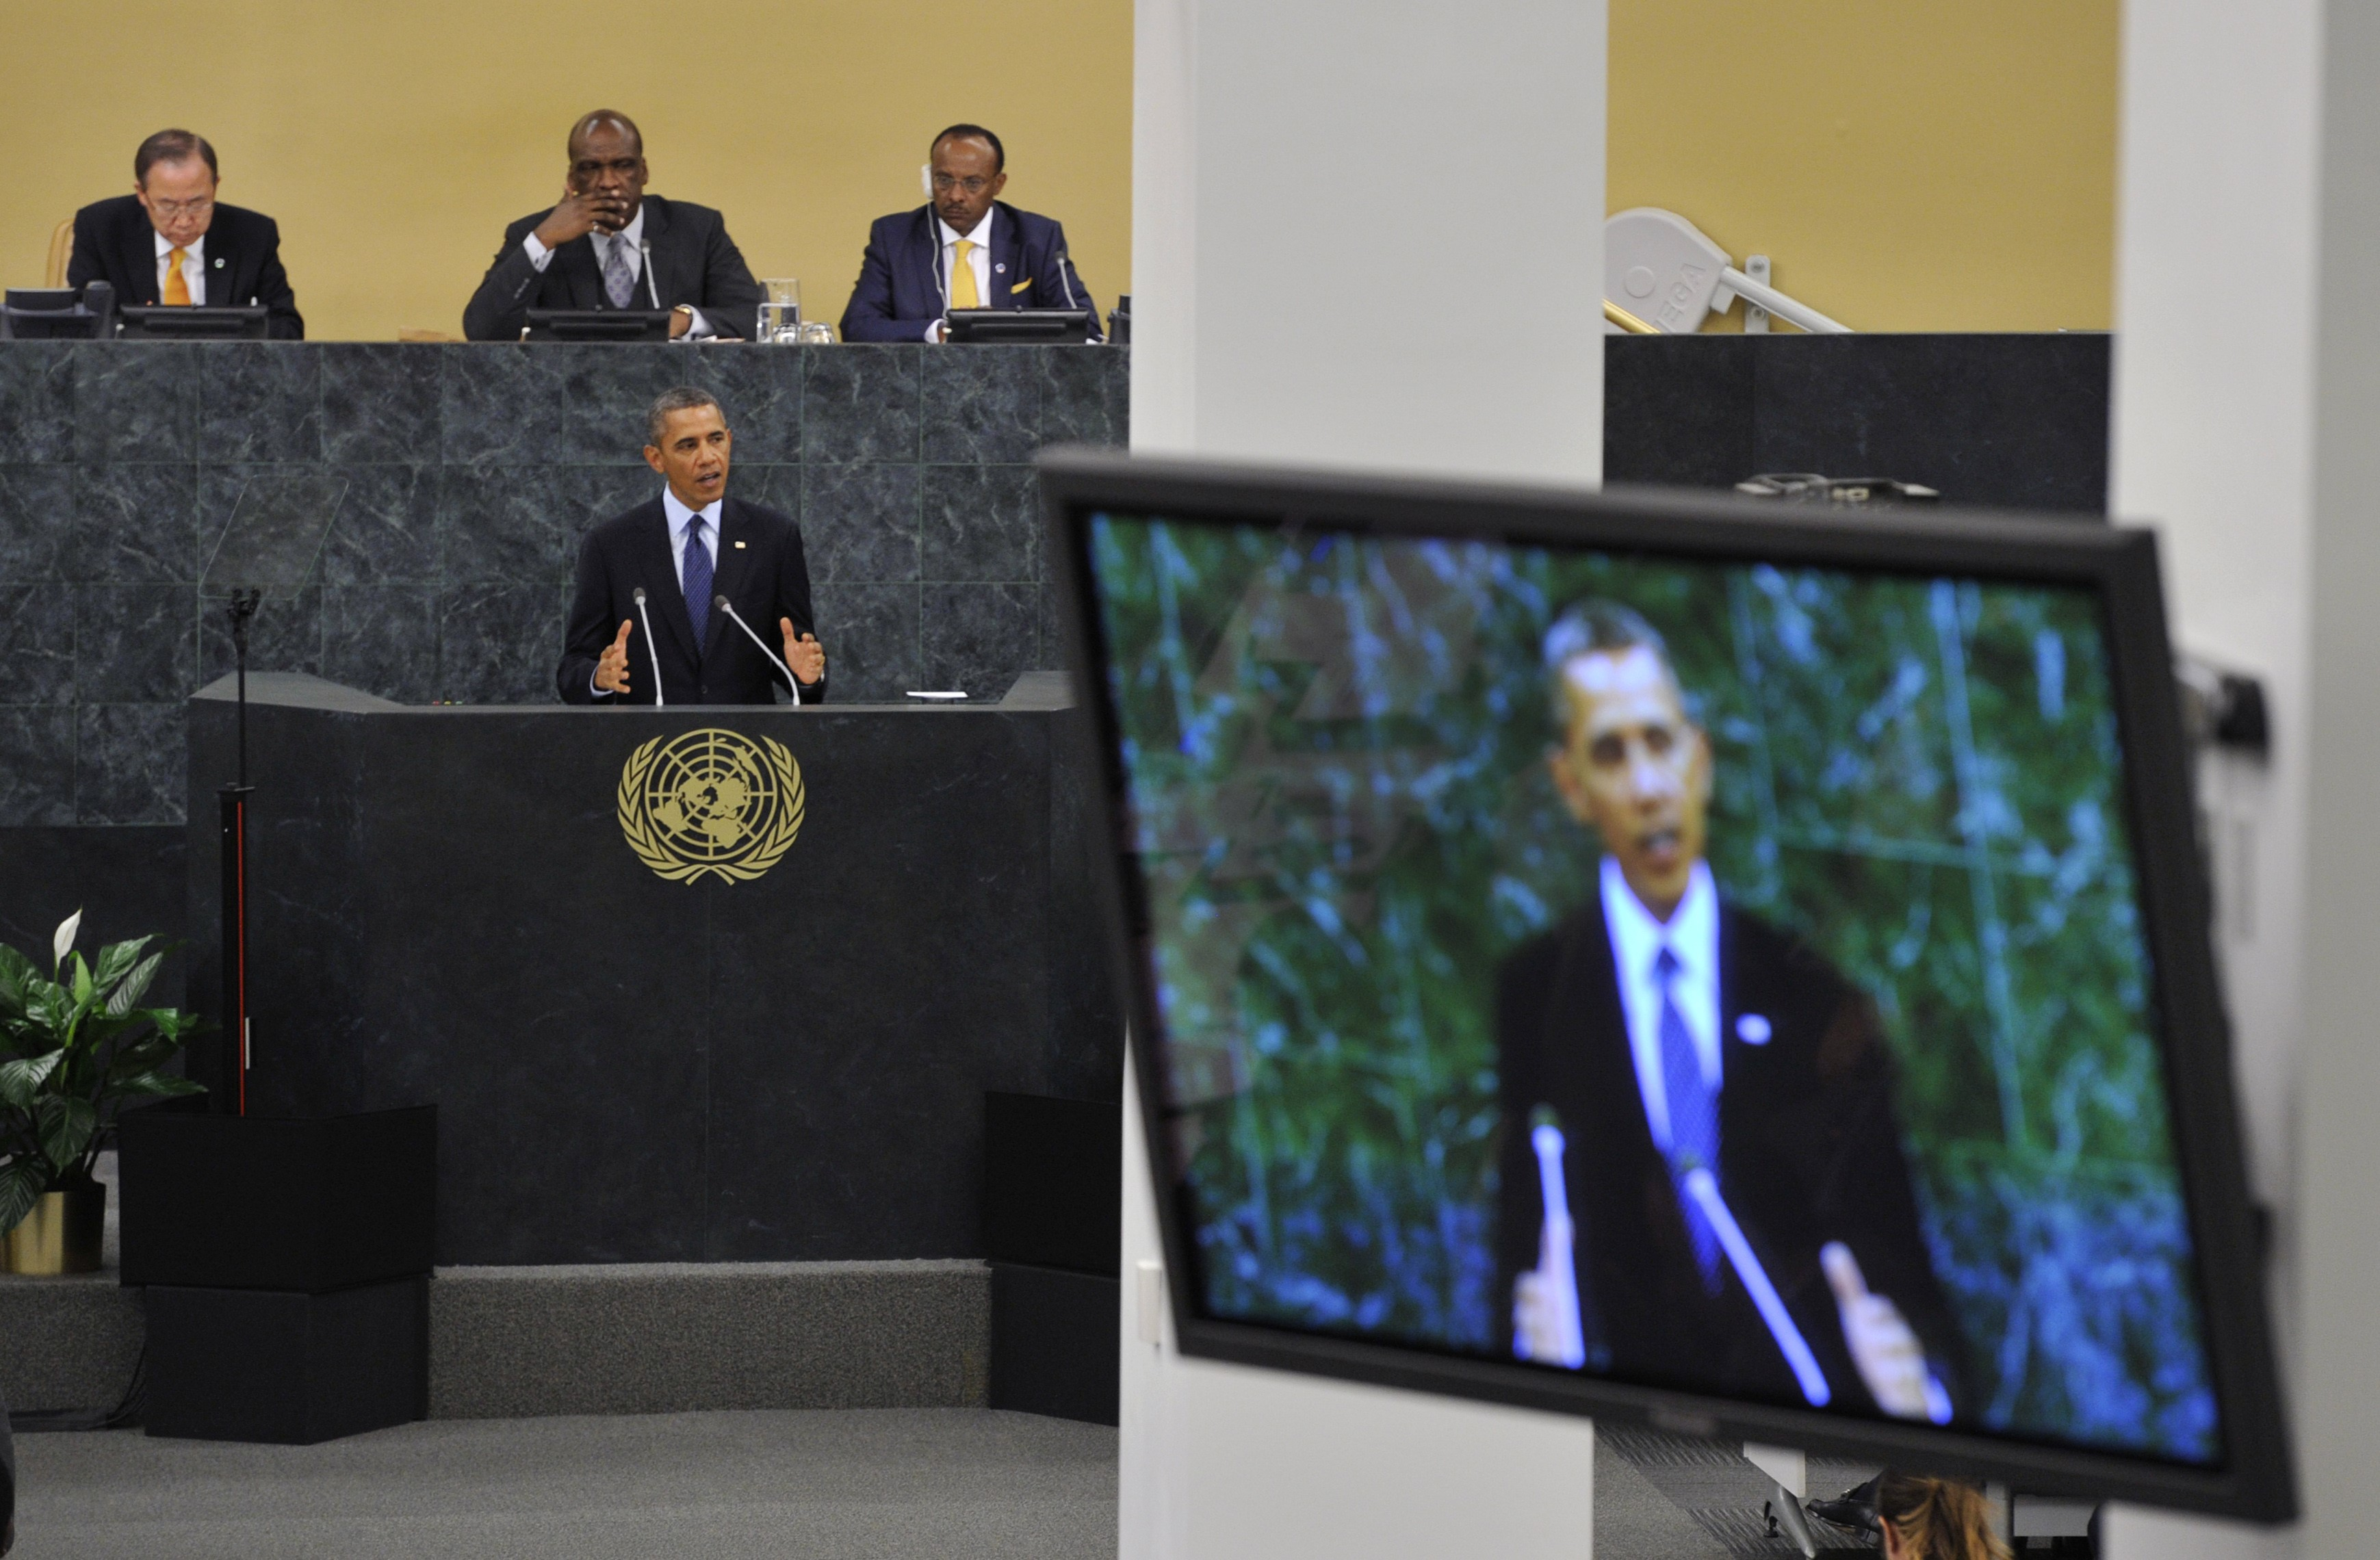 United States President Barack Obama addresses the delegates during the 68th session of the United Nations General Assembly at the United Nations in New York on September 24, 2013. (AFP PHOTO / TIMOTHY CLARY)